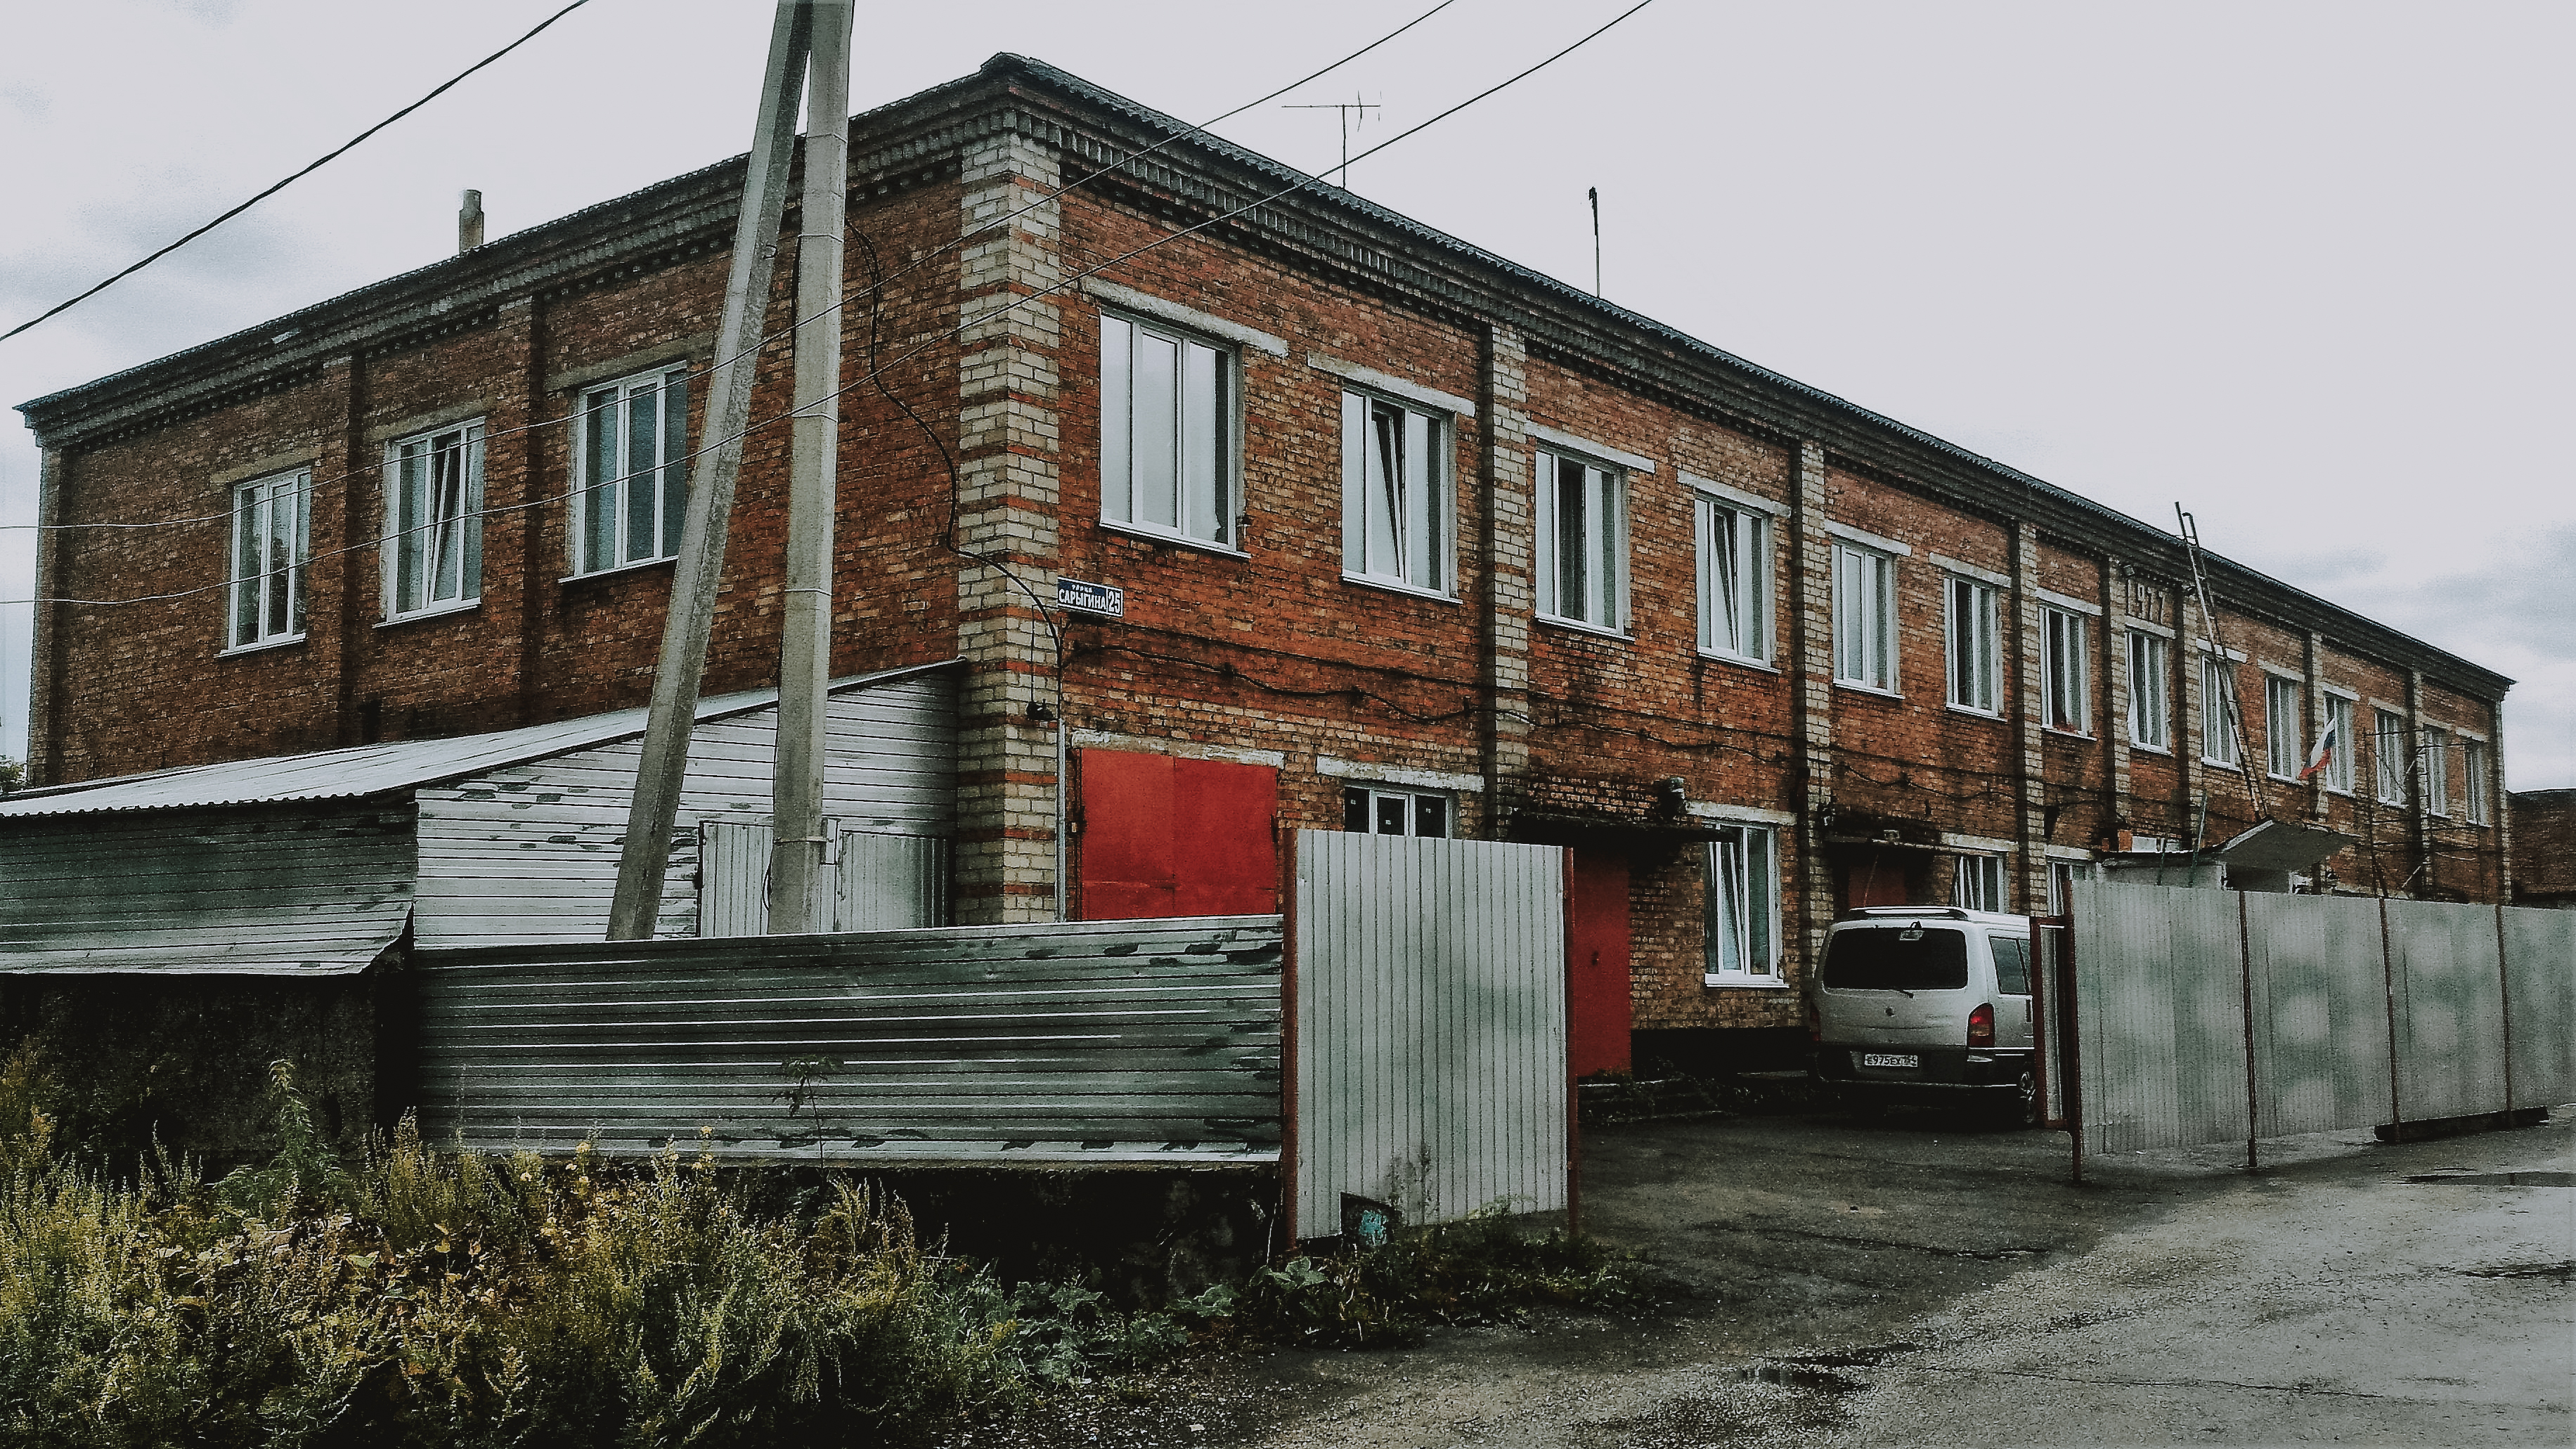 HELP CENTER – REFUGE IN SIBERIA